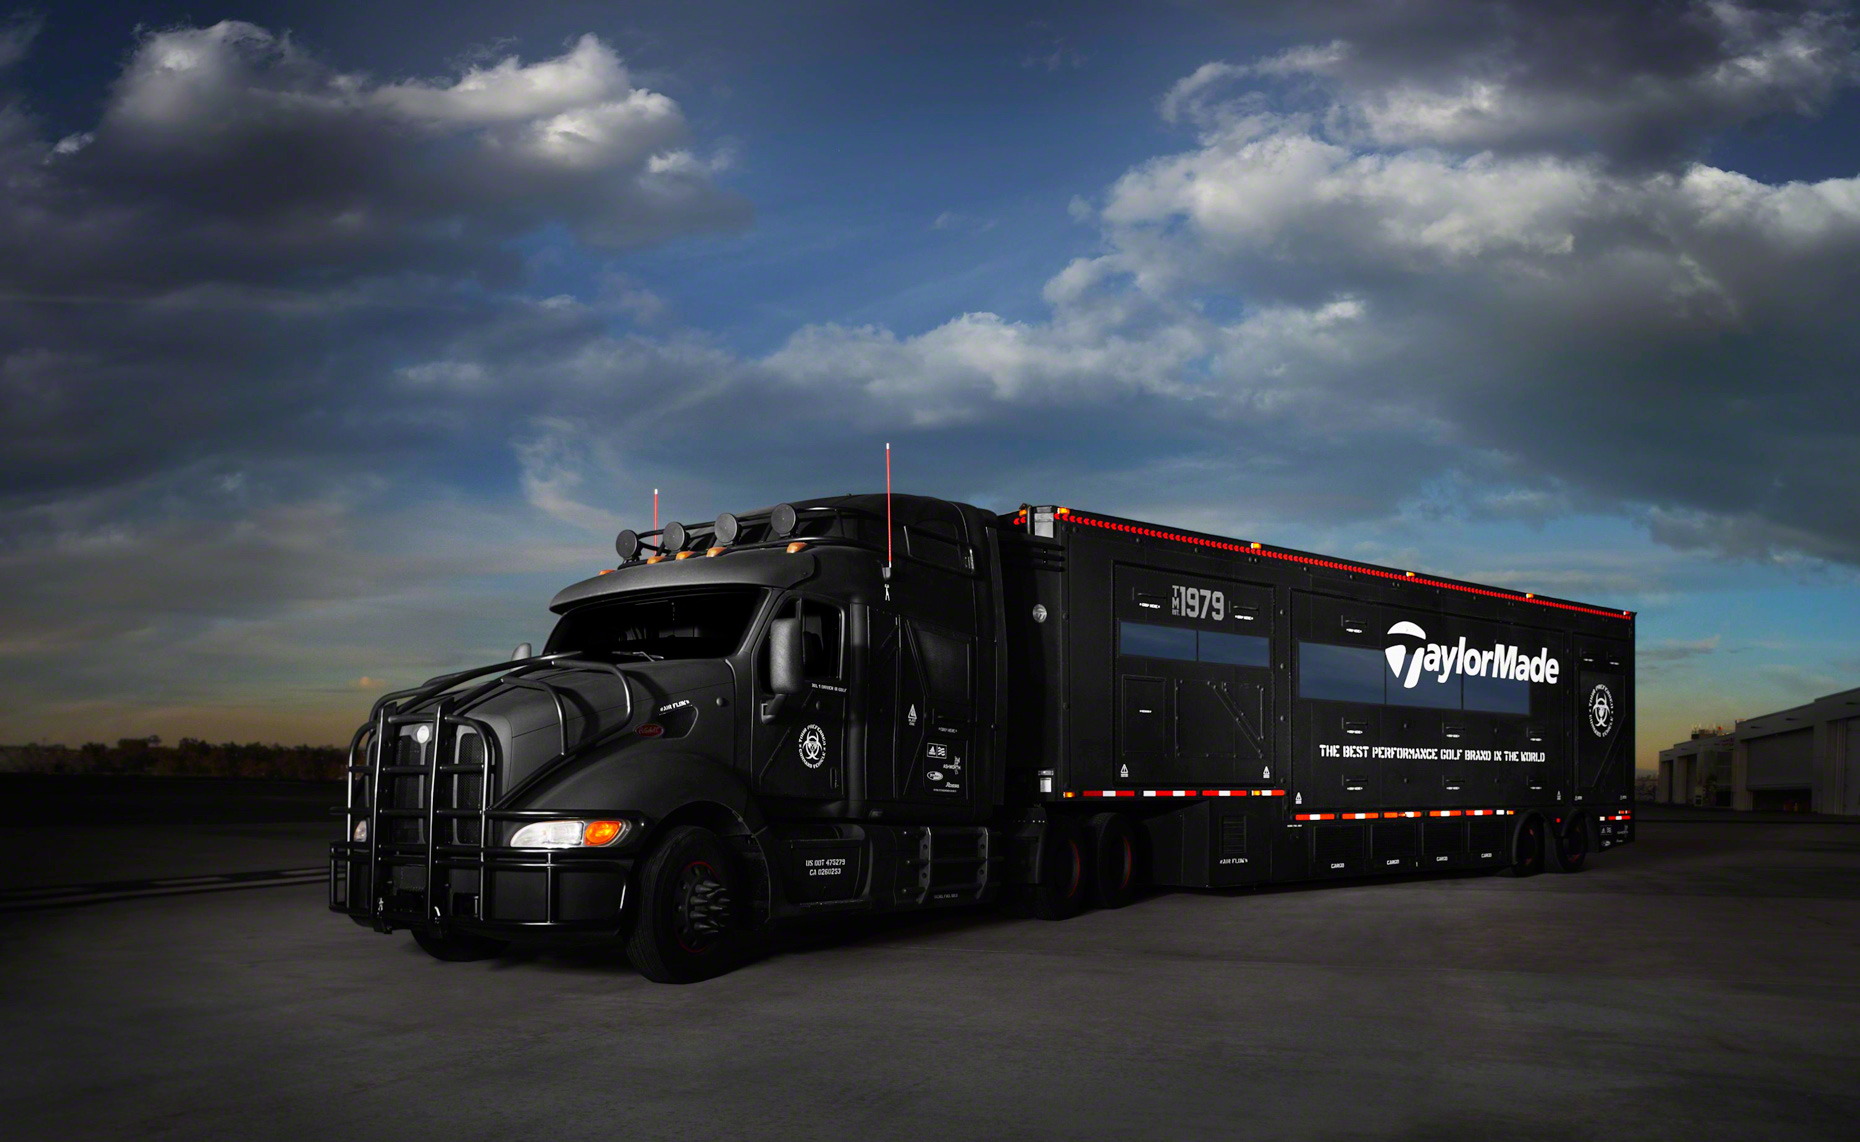 TaylorMade Truck